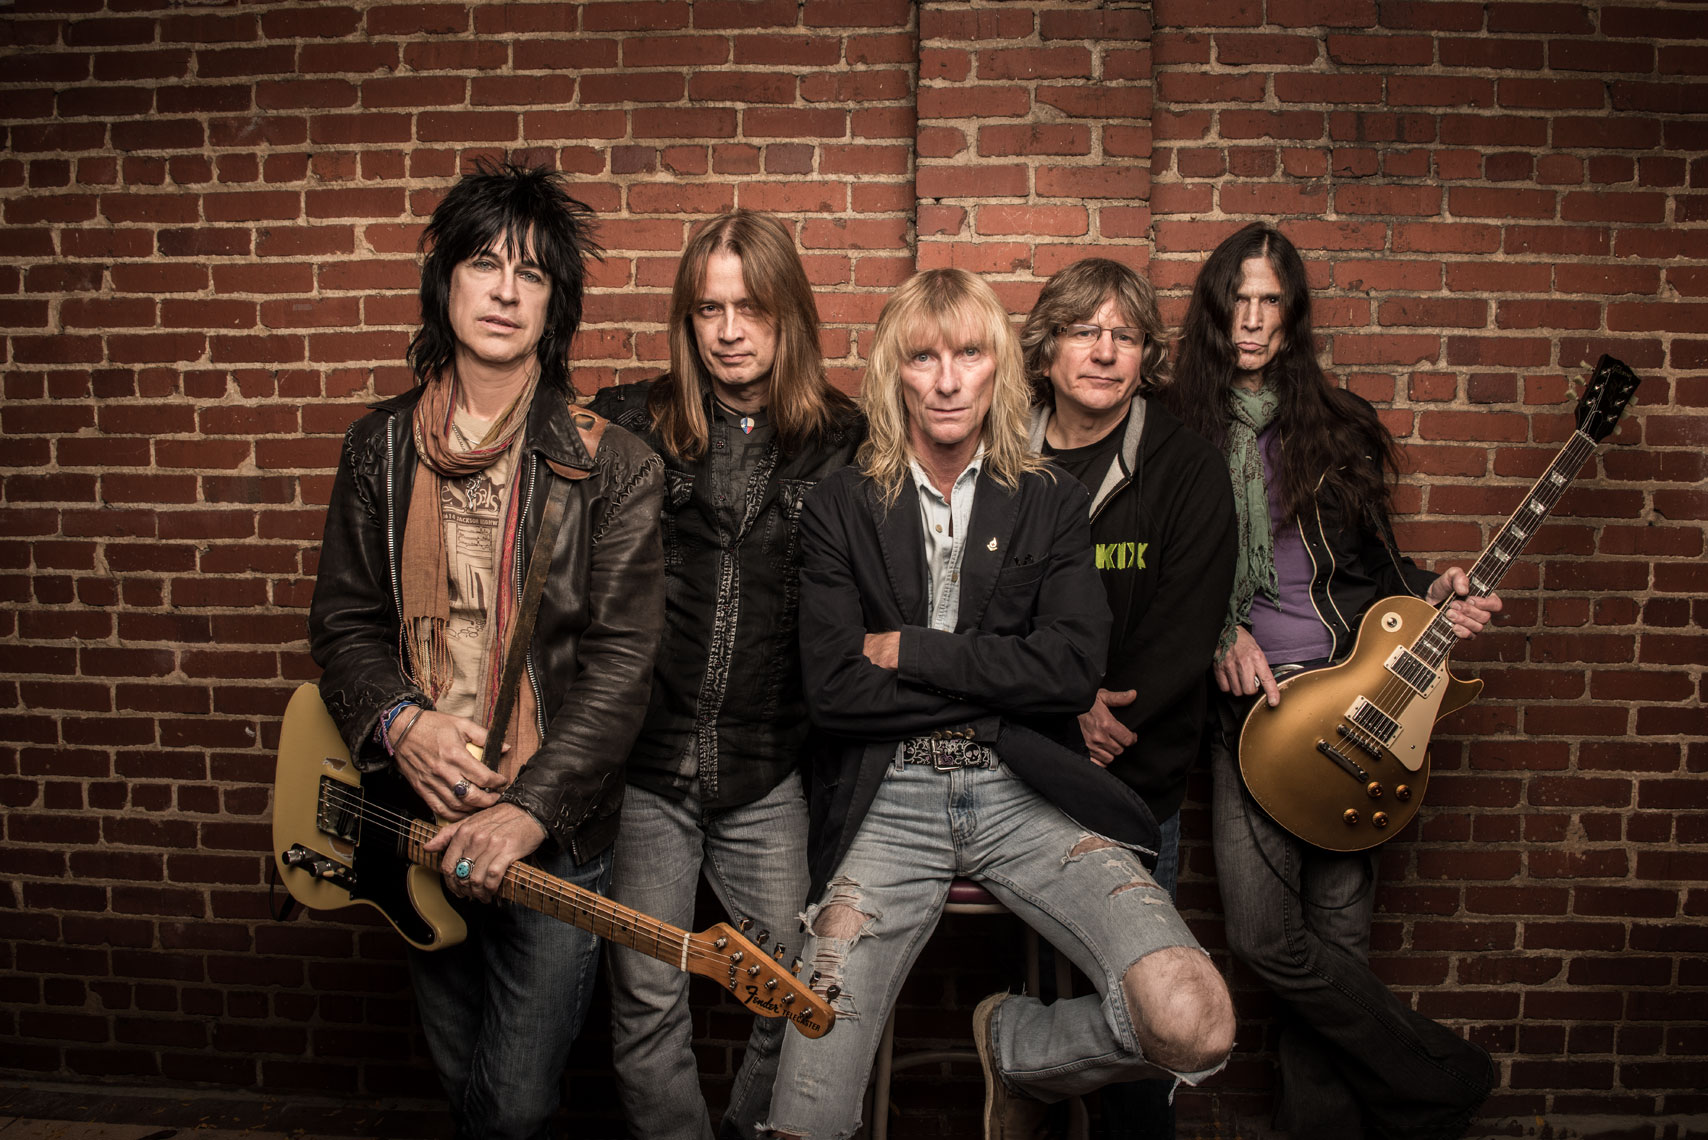 Kix, American rock band